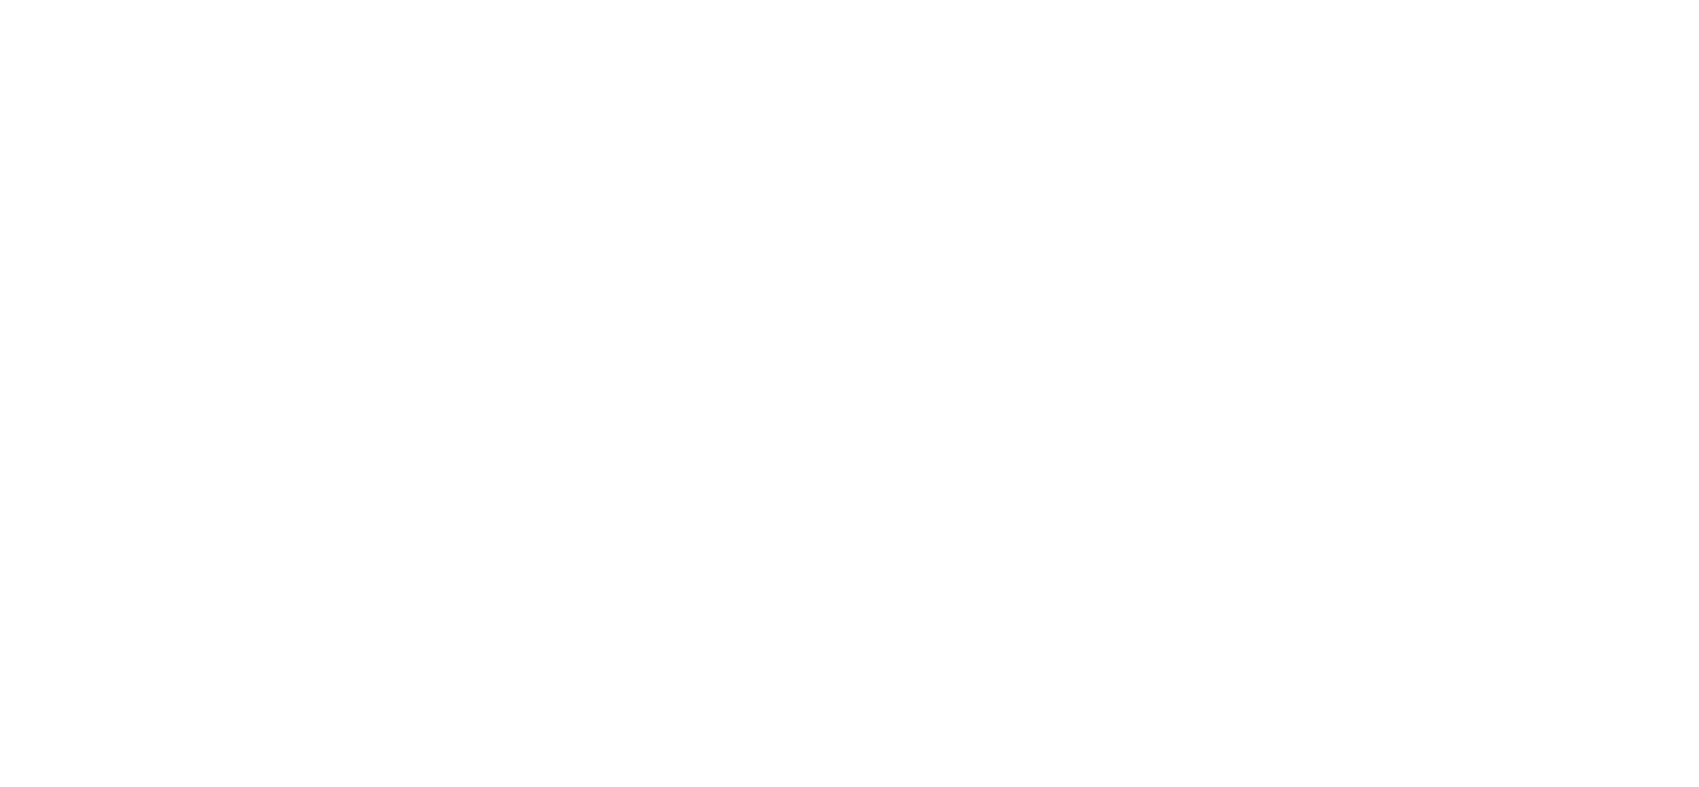 Brex enterprises, a certified pipeline maintenance and construction company and Eagle Eye Productions marketing client.